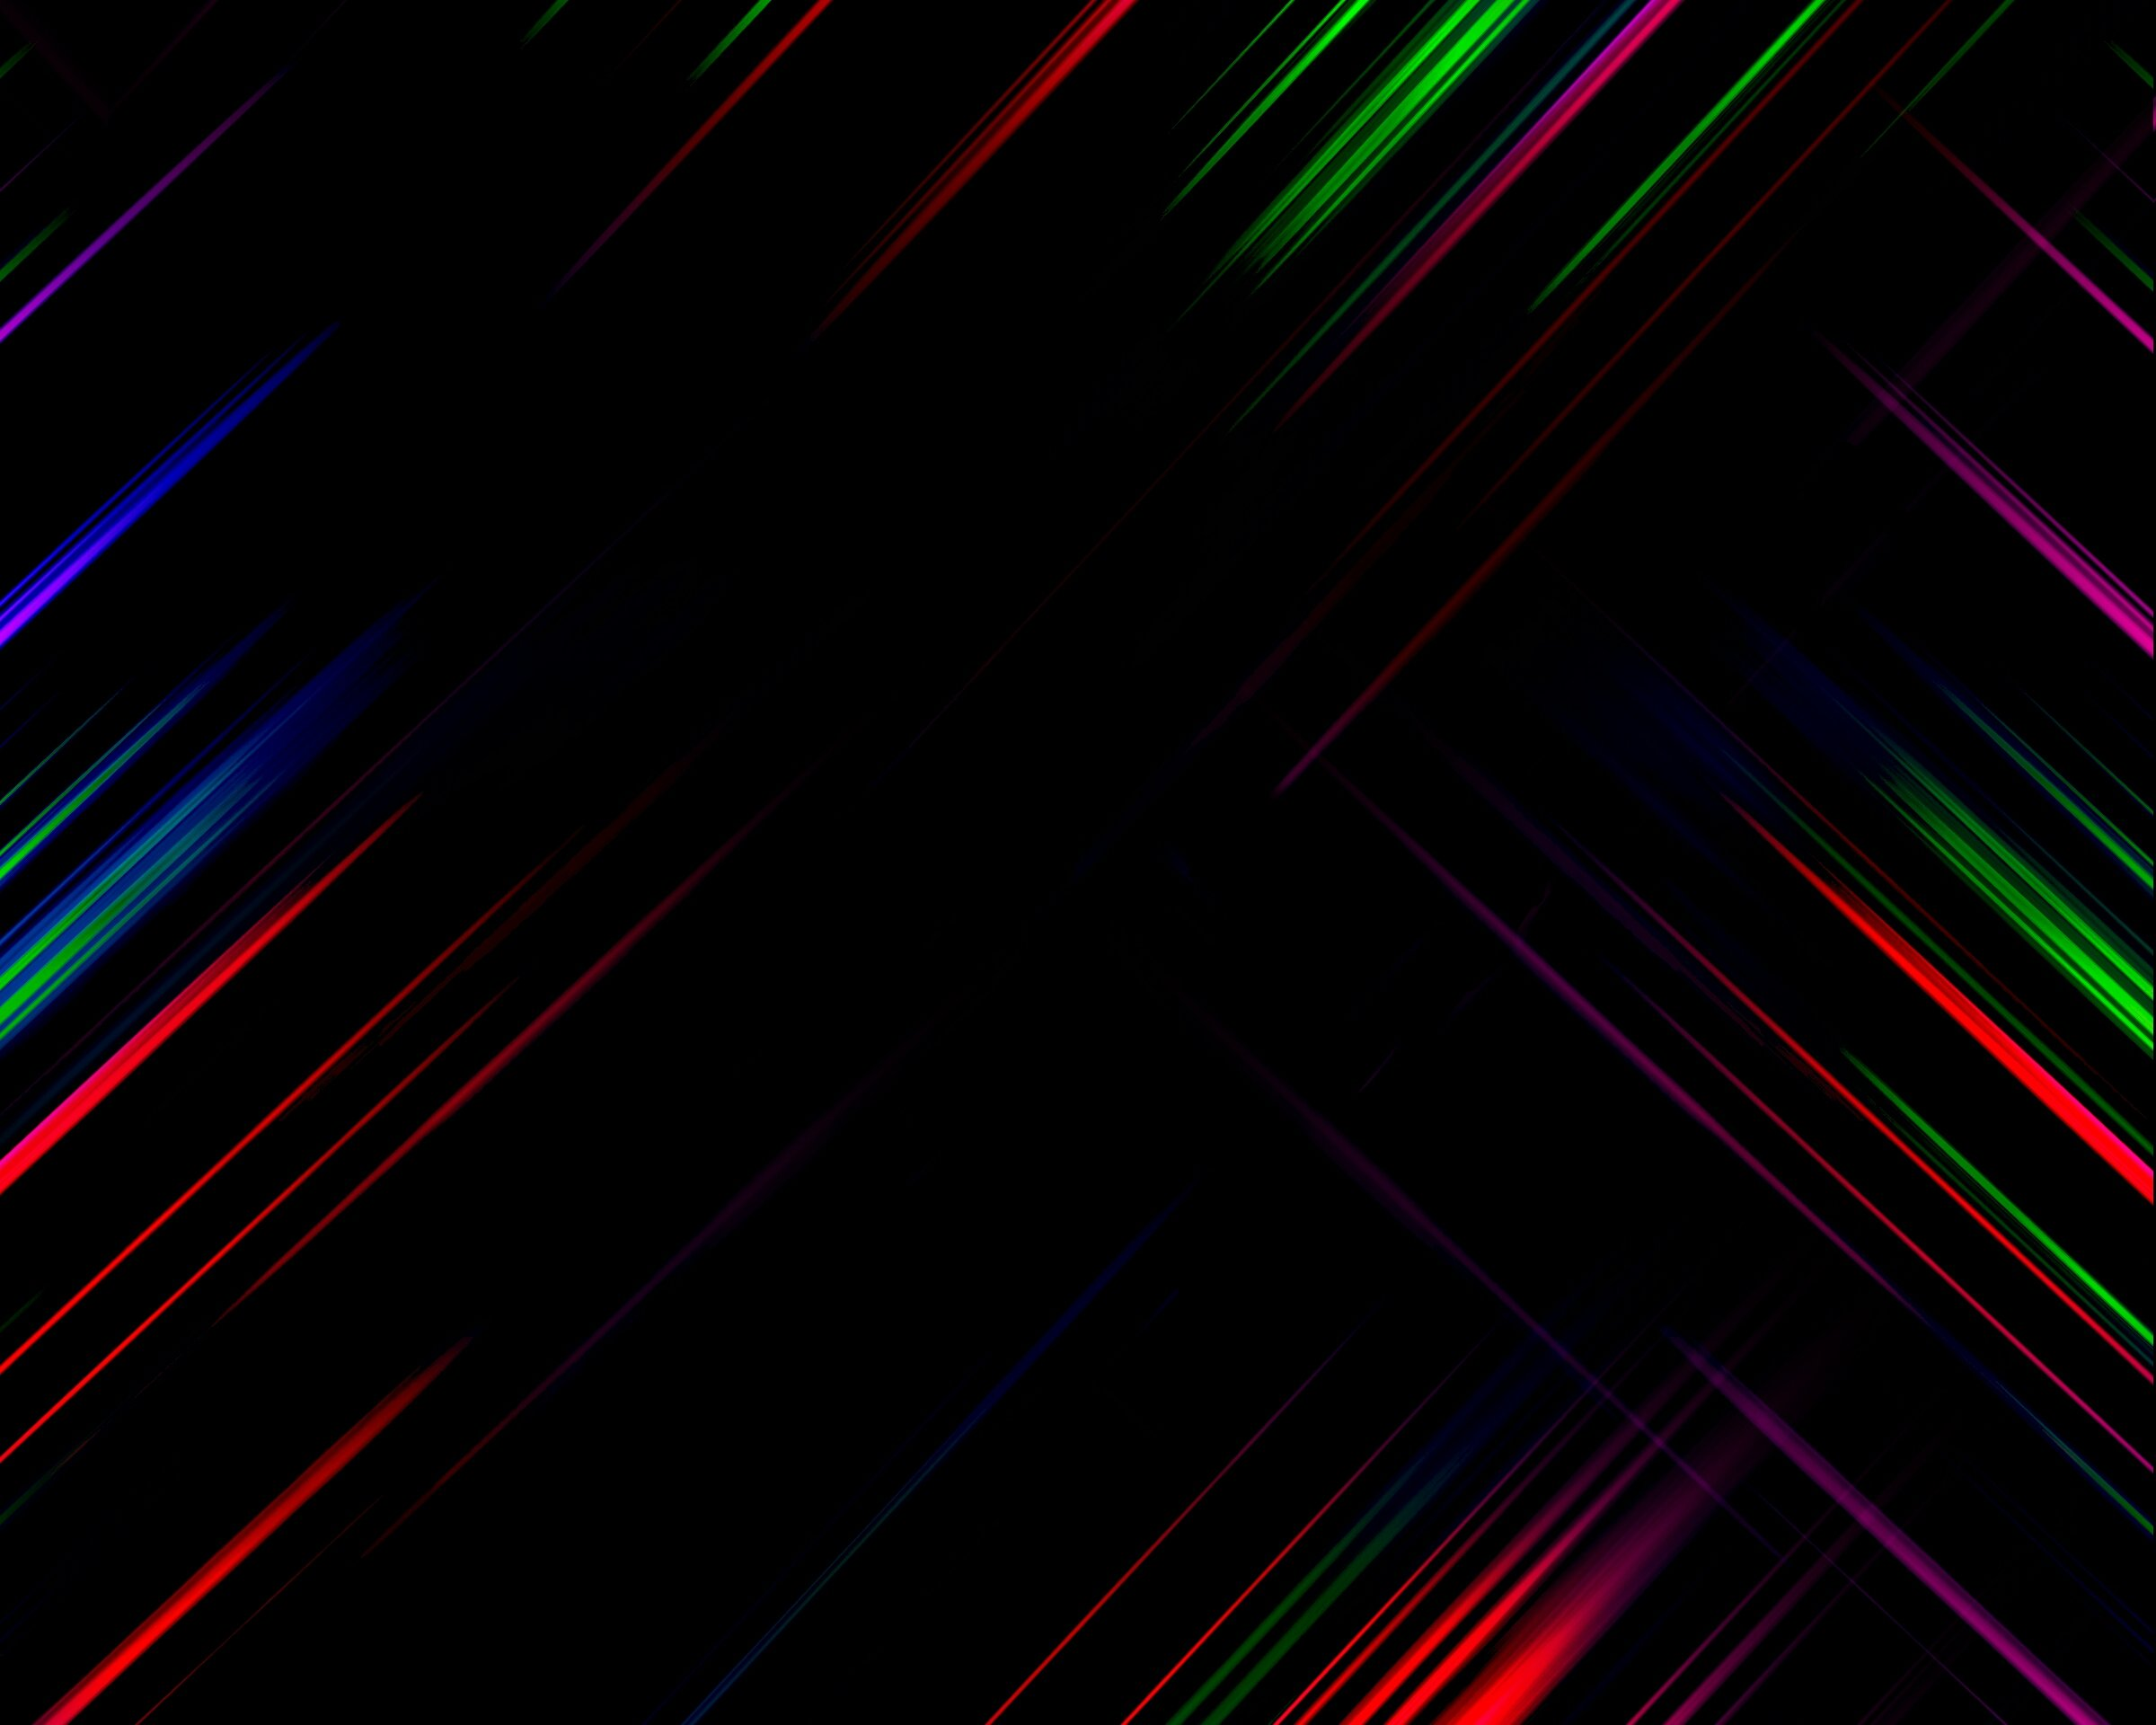 Black Wallpaper Amoled : 30 wallpapers perfect for AMOLED screens